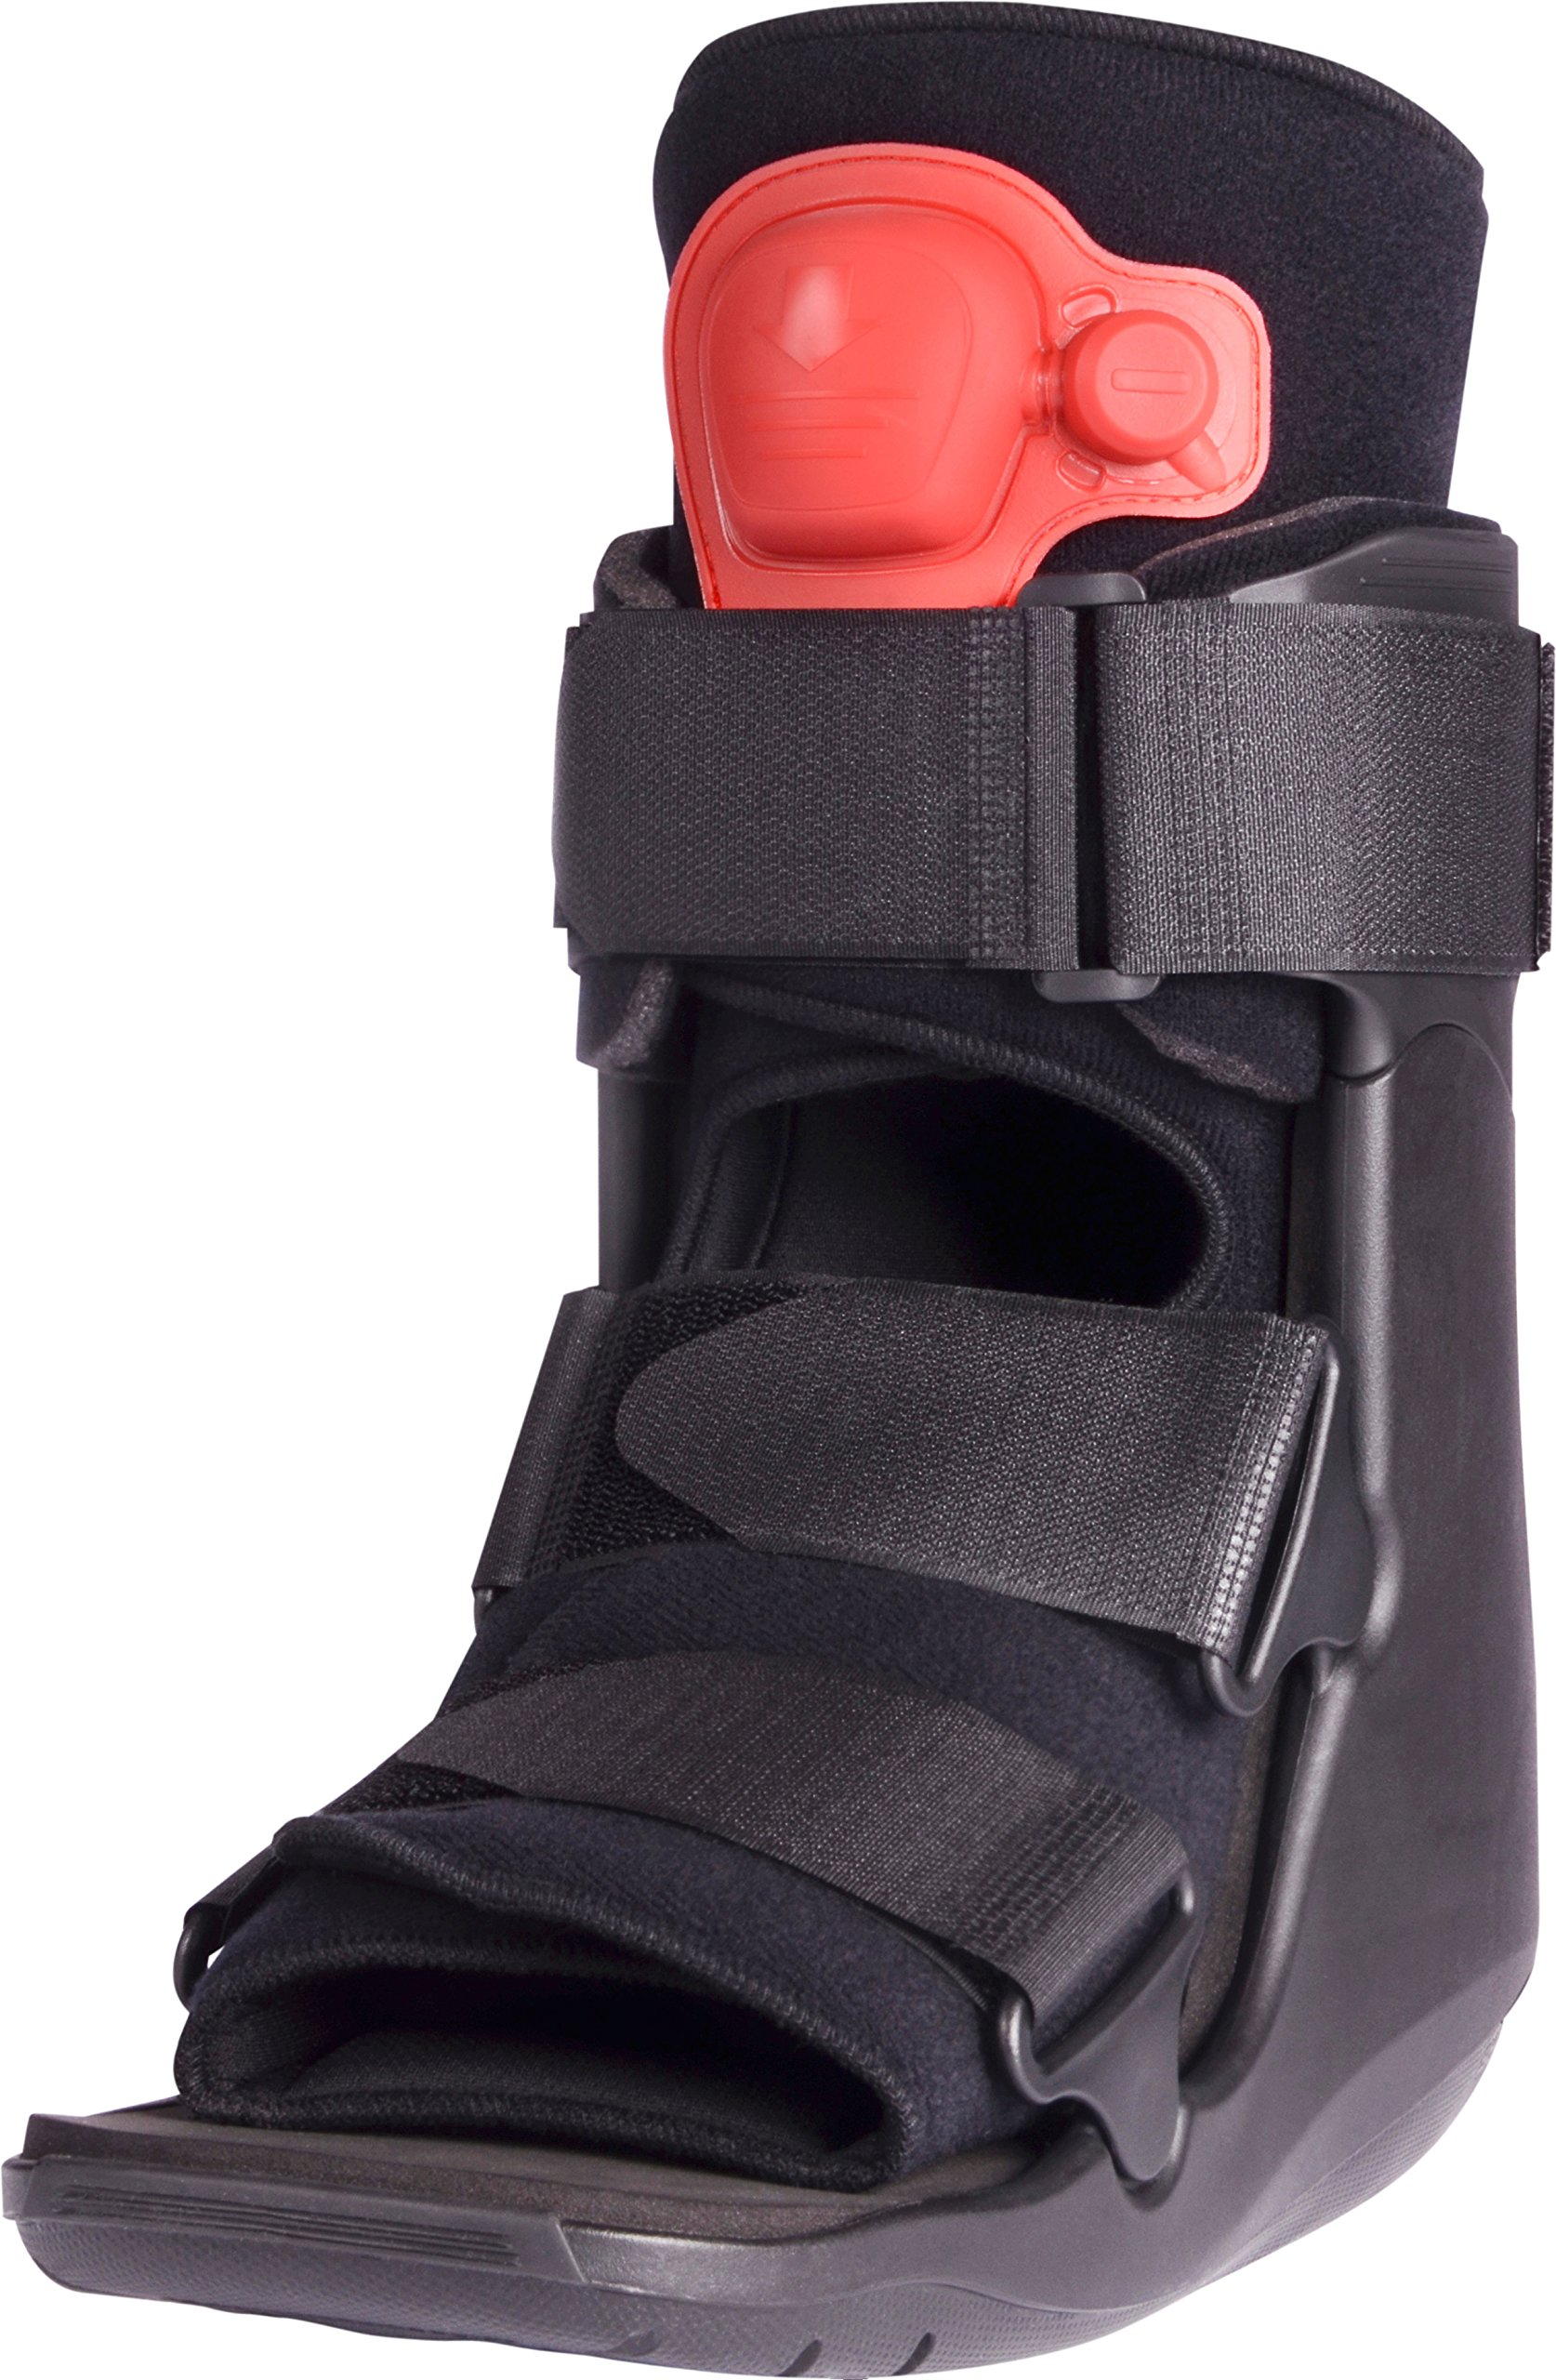 ProCare XcelTrax Air Ankle Walker Brace / Walking Boot, Medium